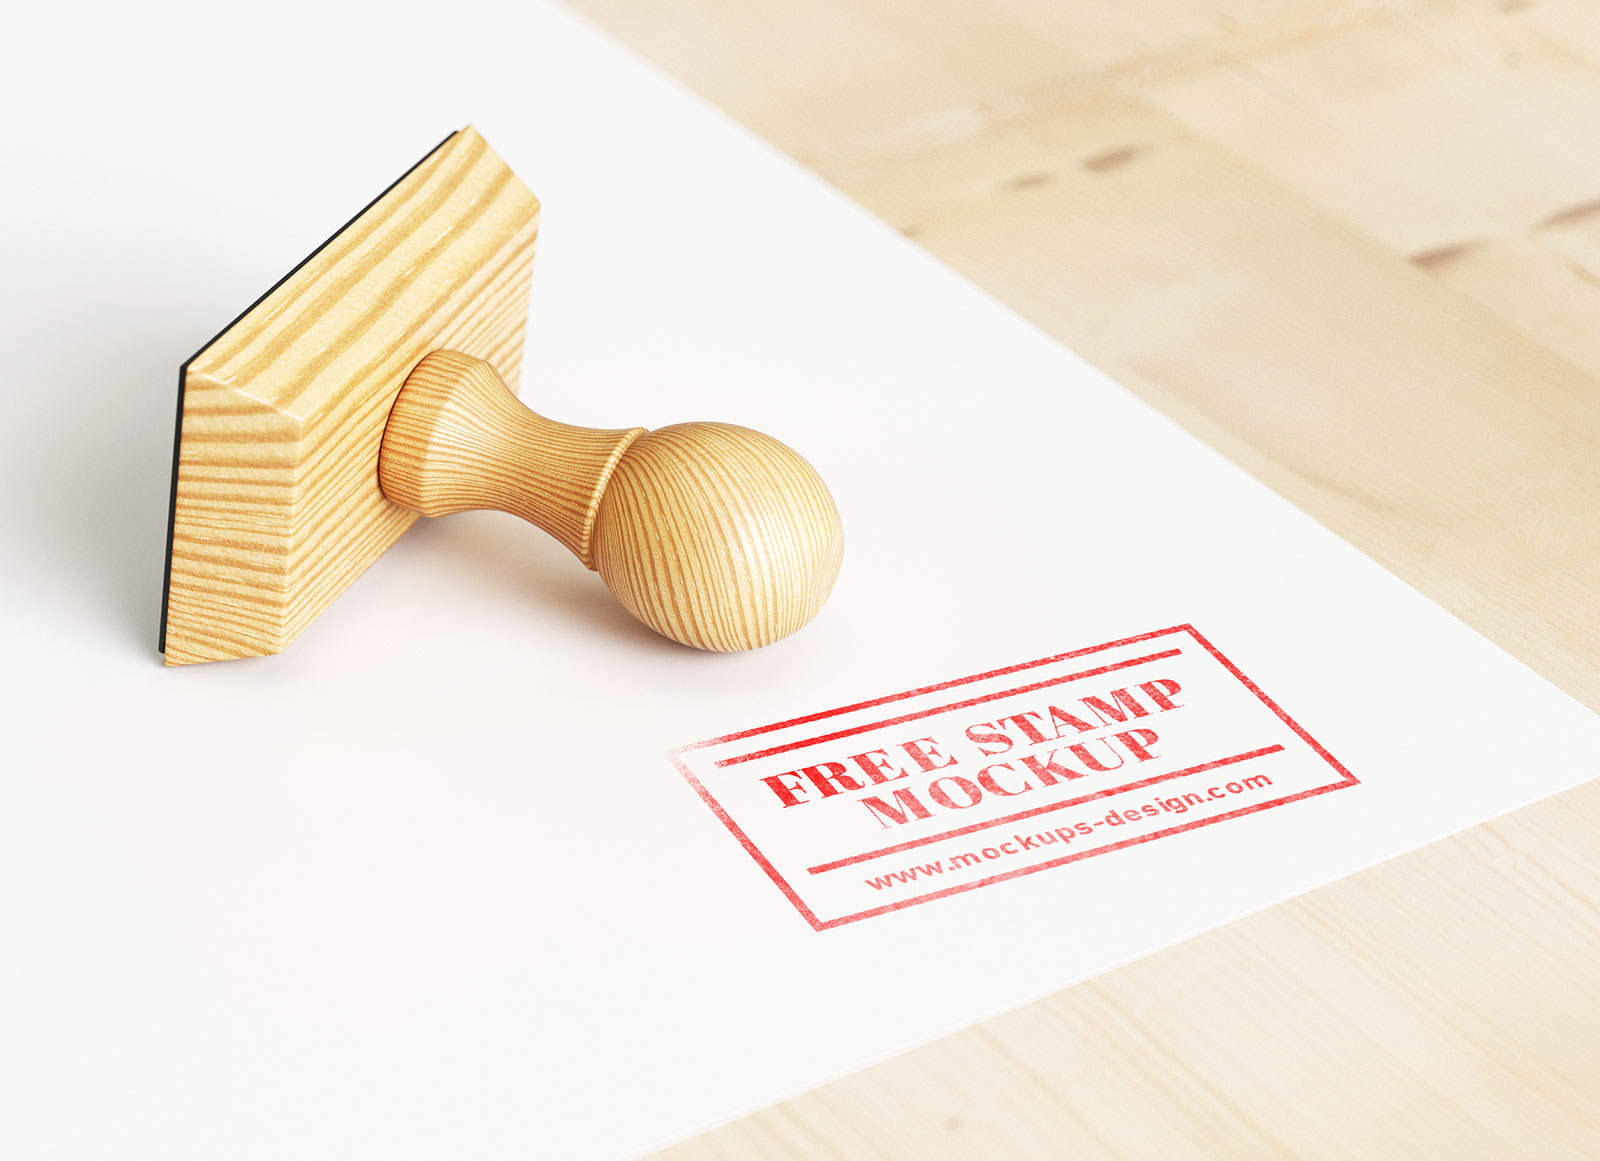 Free-Wooden-Rubber-Stamp-Mockup-PSD